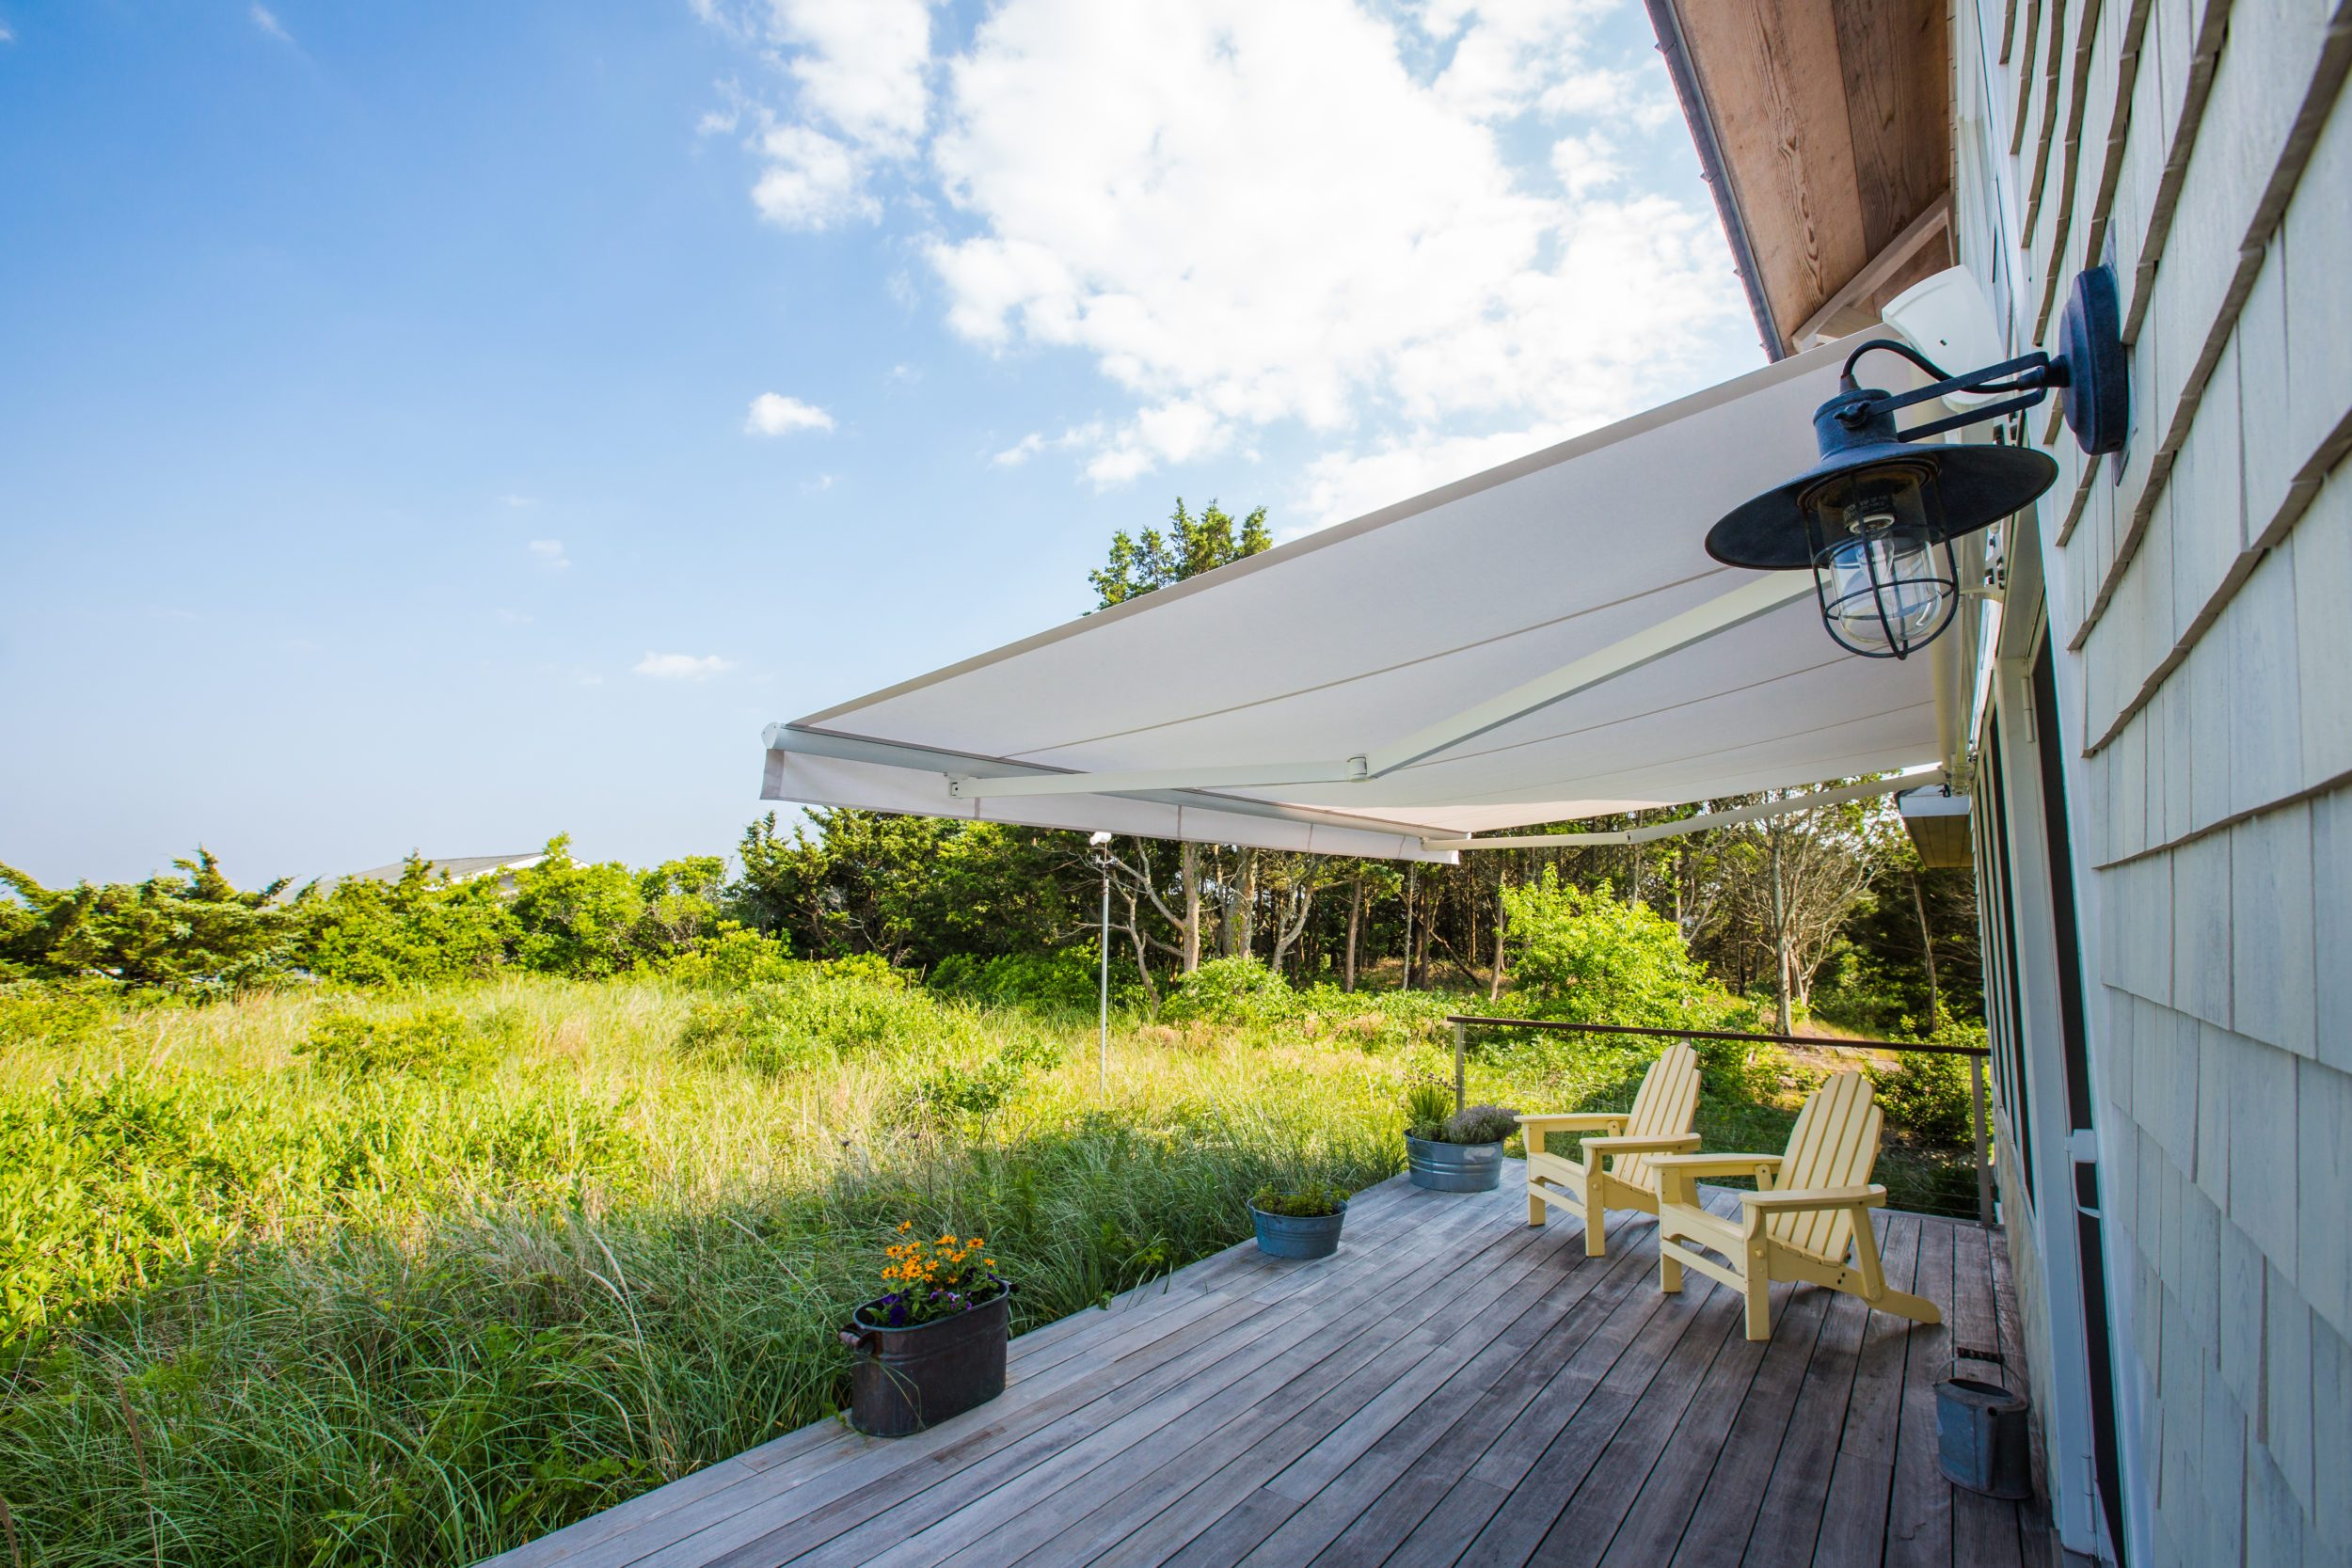 pergola home retractable awnings awning liberty nj wintrow pictures products amber ideas awesome convenience comfort